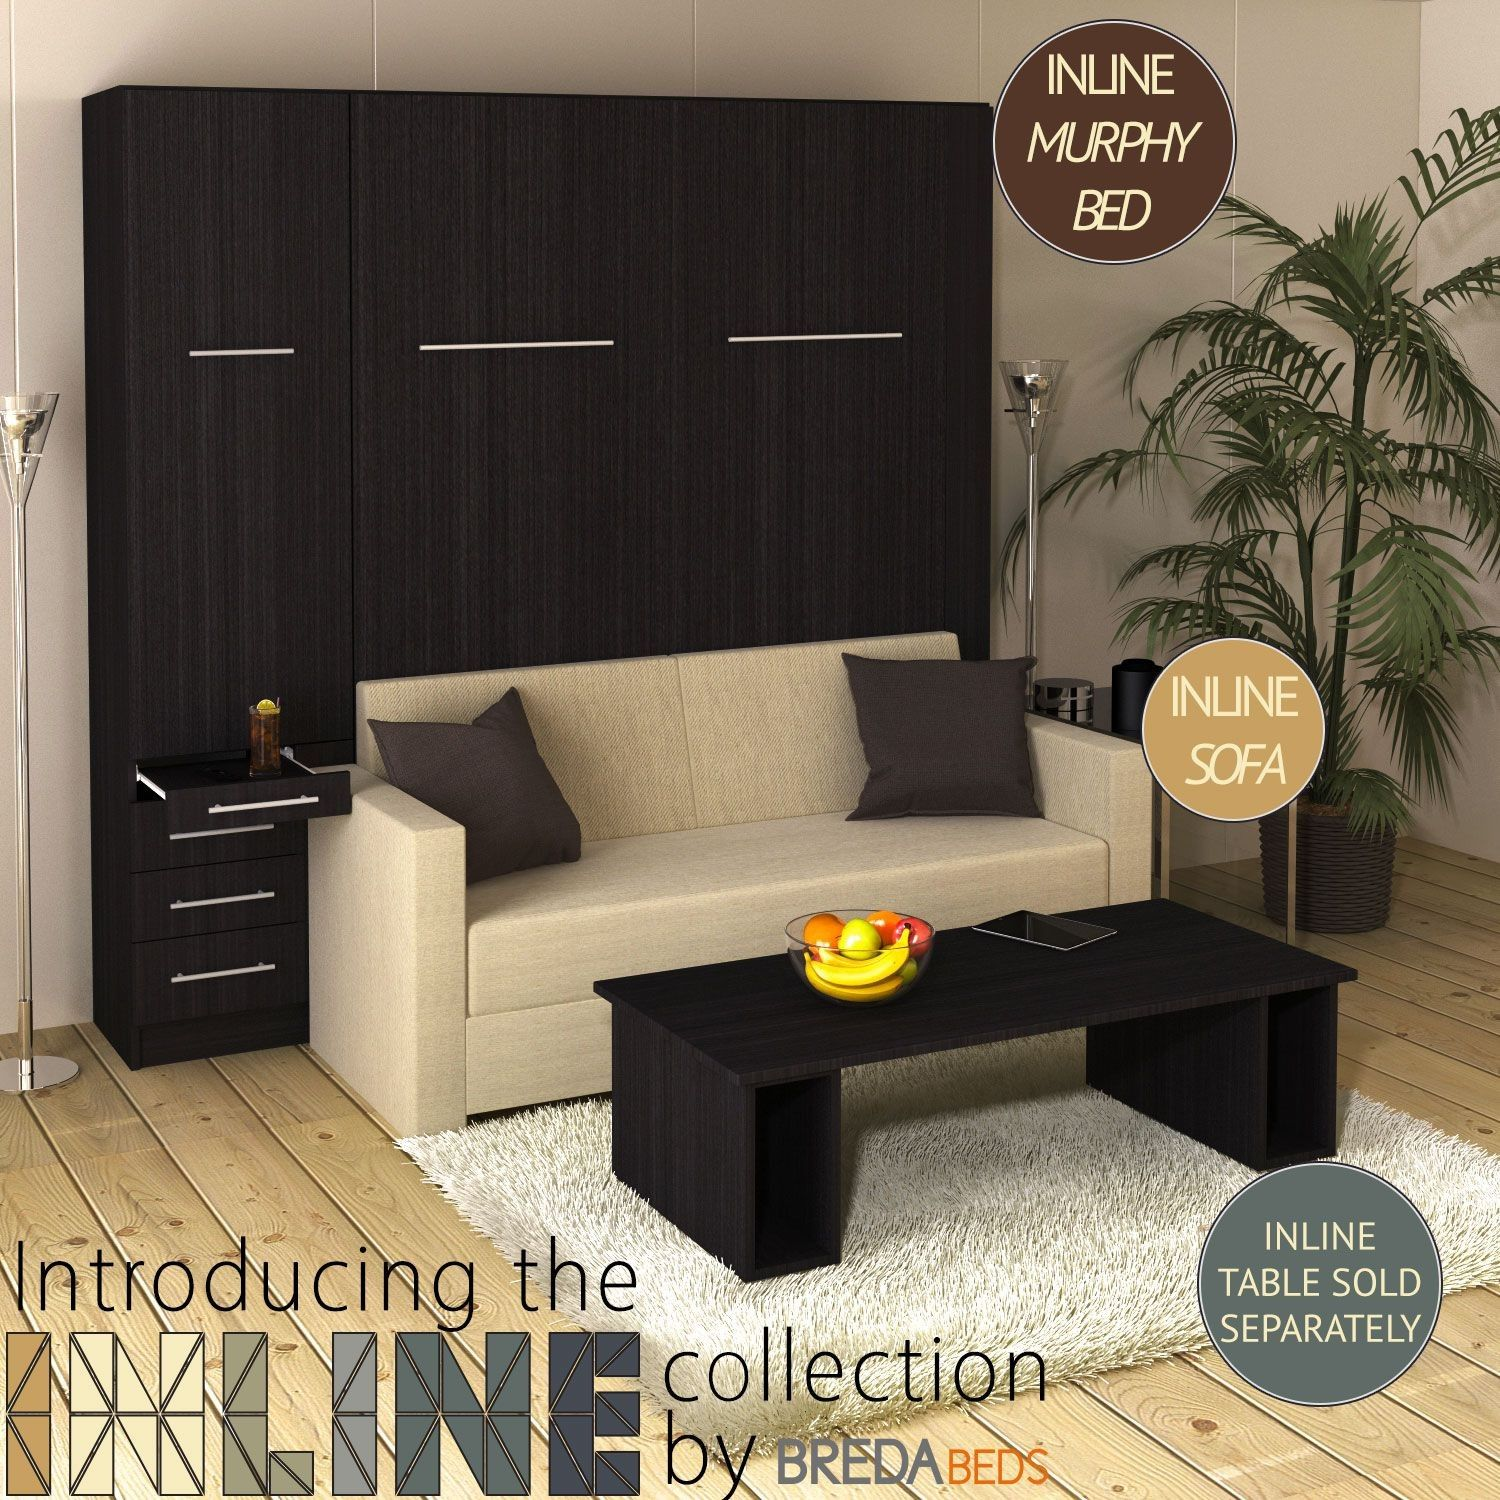 Pin on InLine Collection by BredaBeds